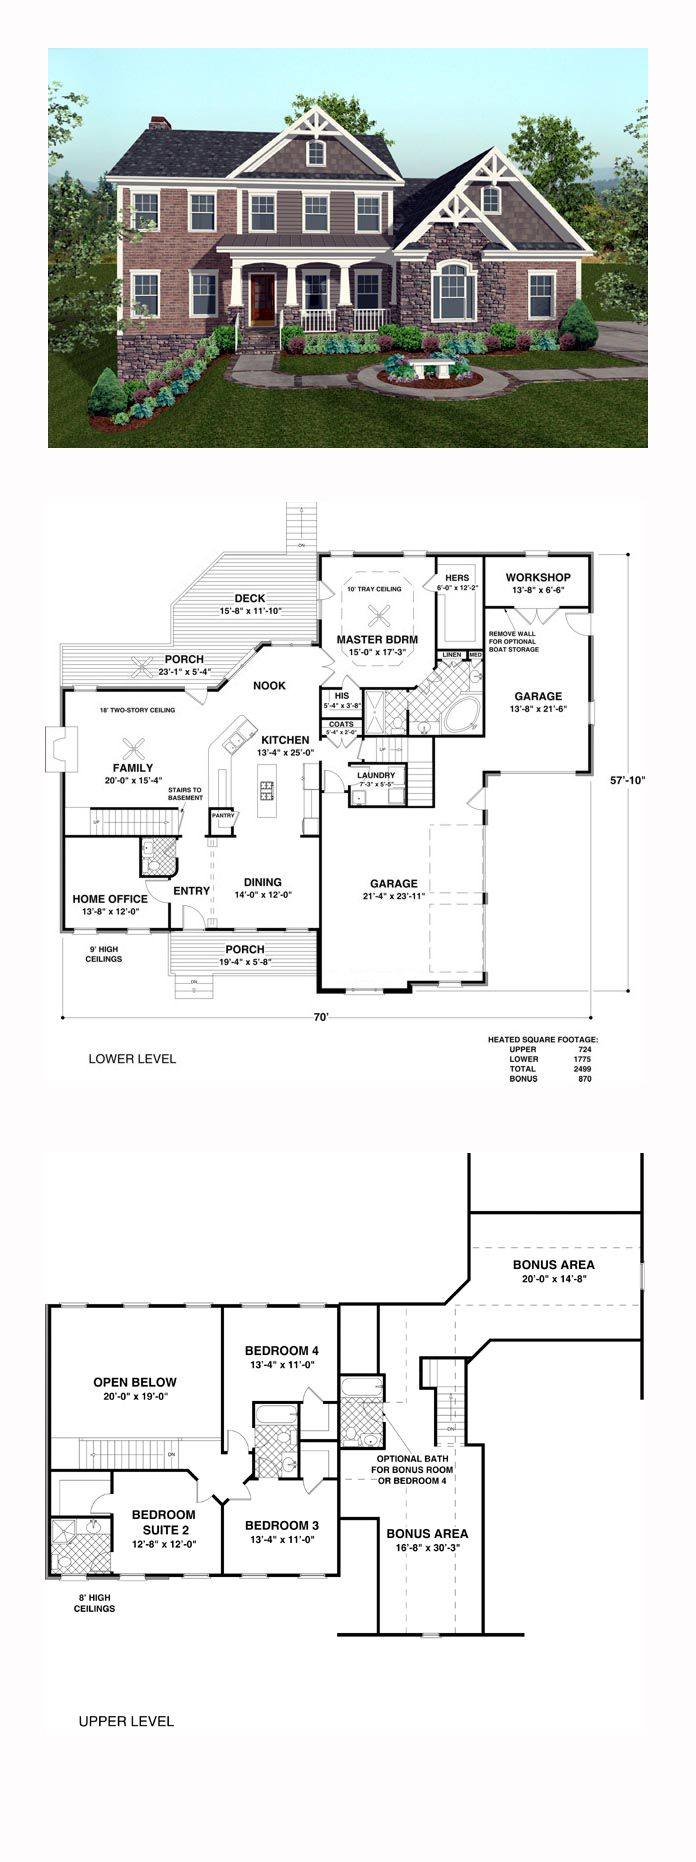 Craftsman Style COOL House Plan ID: chp-43645 | Total Living Area: 2499 sq. ft., 4 bedrooms and 3.5 bathrooms. #craftsmanhome